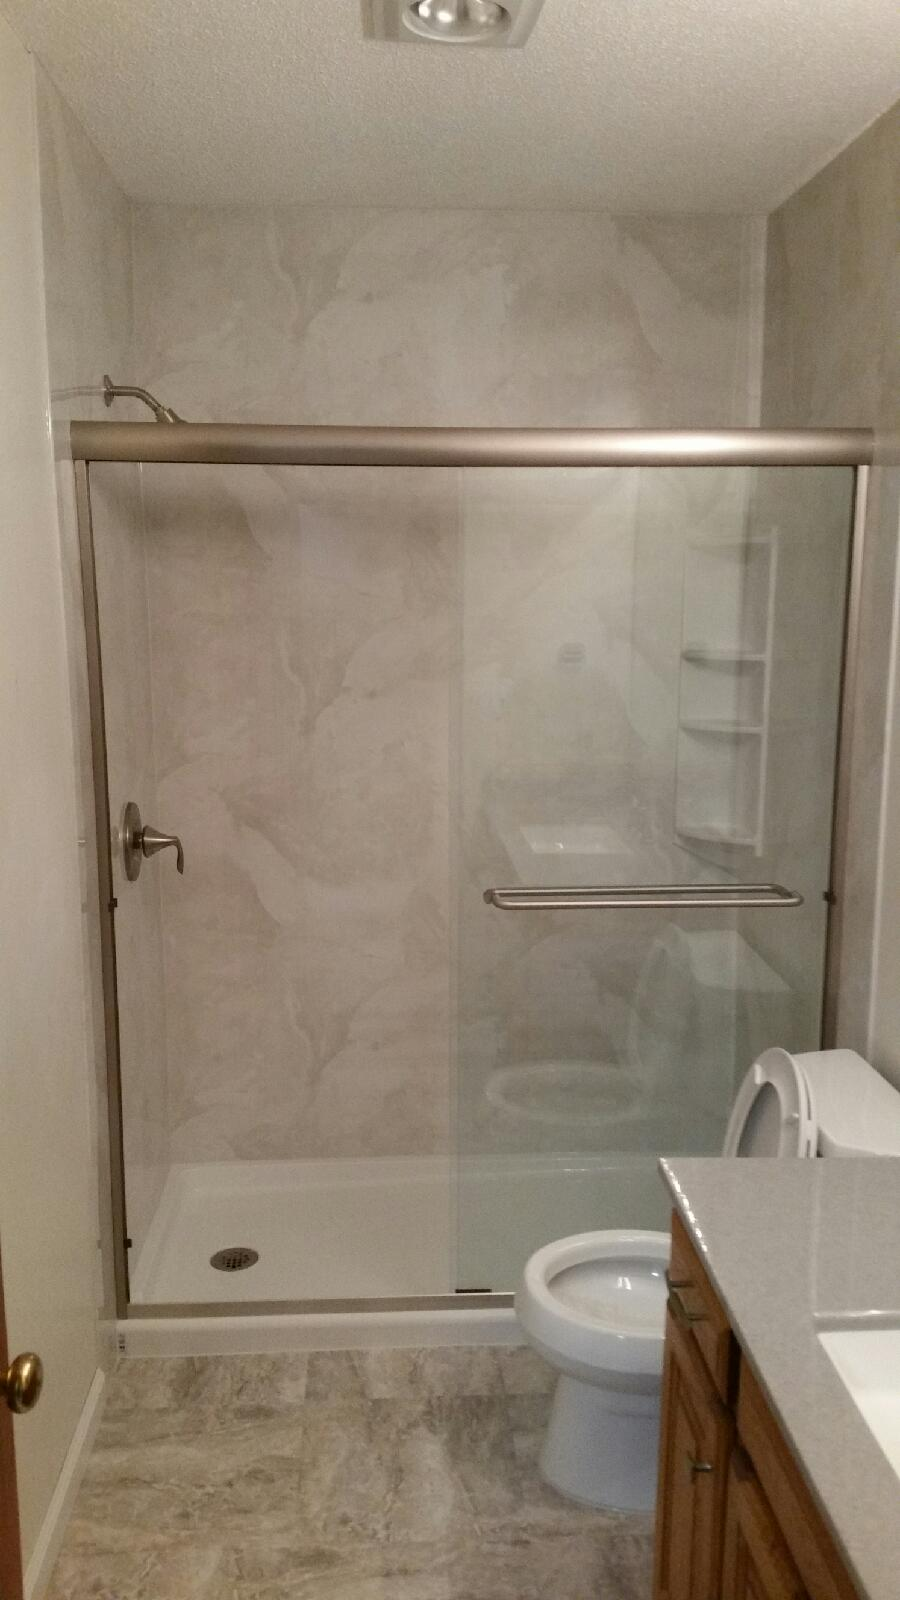 AFTER - New Acrylic Walk-in Shower in Silver White Marble Smooth Surround with White Acrylic Shower Pan.  New flooring is Congoleum Duraceramic Roman Elegance: Light Greige (RE-43) and new Vanity Top